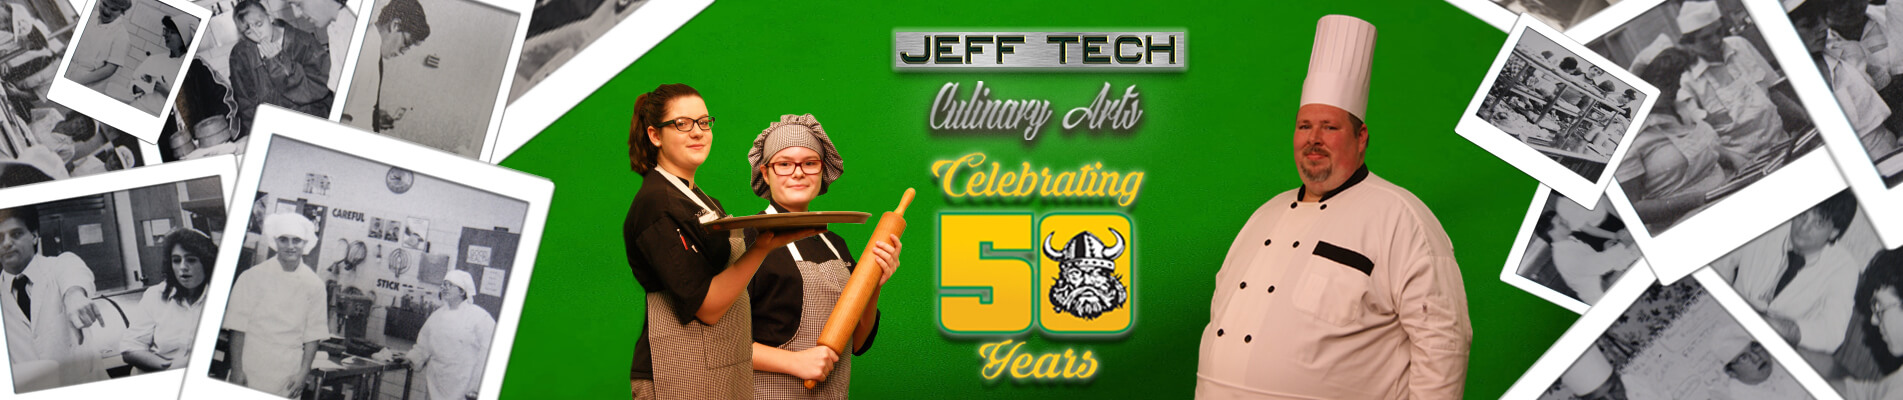 Jeff Tech Culinary Arts Celebrating 50 Years. Learn more about our CTE Programs.